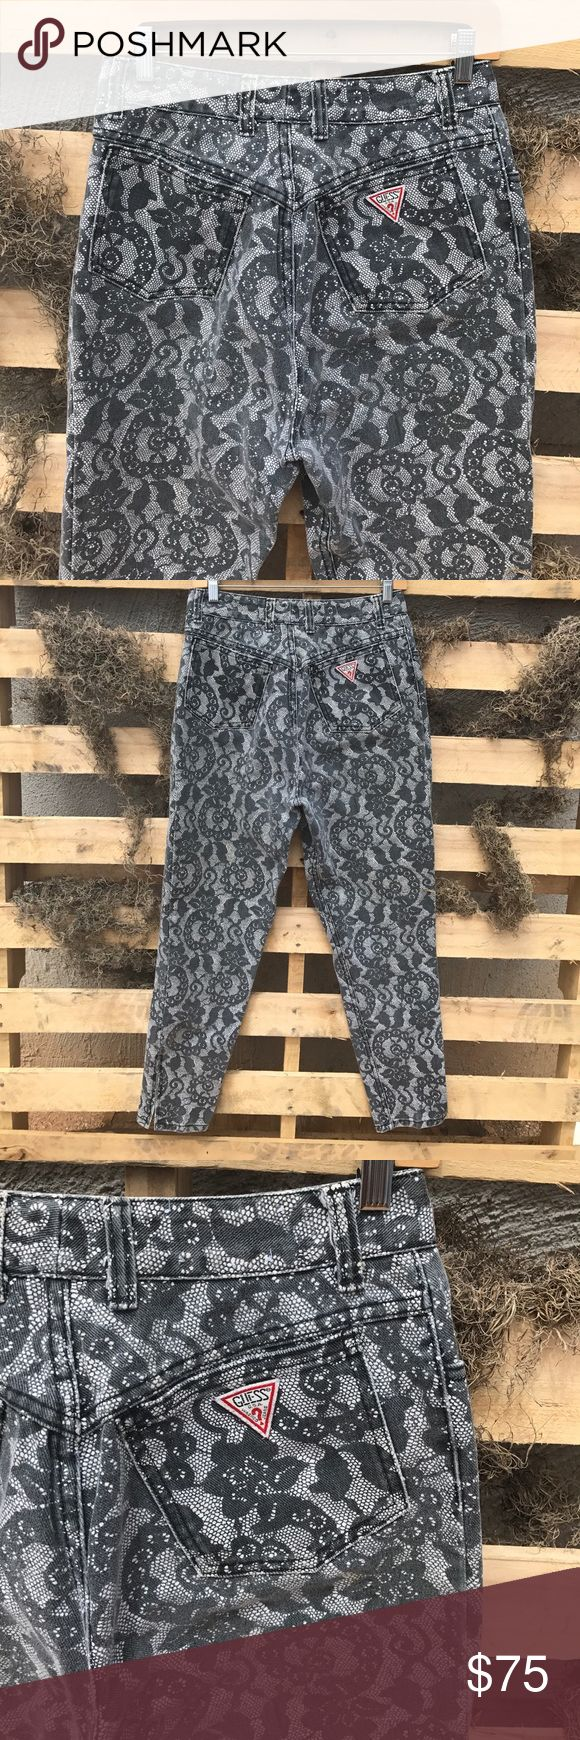 """VINTAGE GUESS? Marciano Lace High Rise jeans 31 Amazing Vintage Lace jeans from Marciano for Guess! Extra high rise! Zippered ankles. In great condition. Has three cream paint marks on front legs.(see last photo for example) Waist: 14"""" Front Rise: 13.5"""" Inseam: 28"""" Guess by Marciano Jeans"""